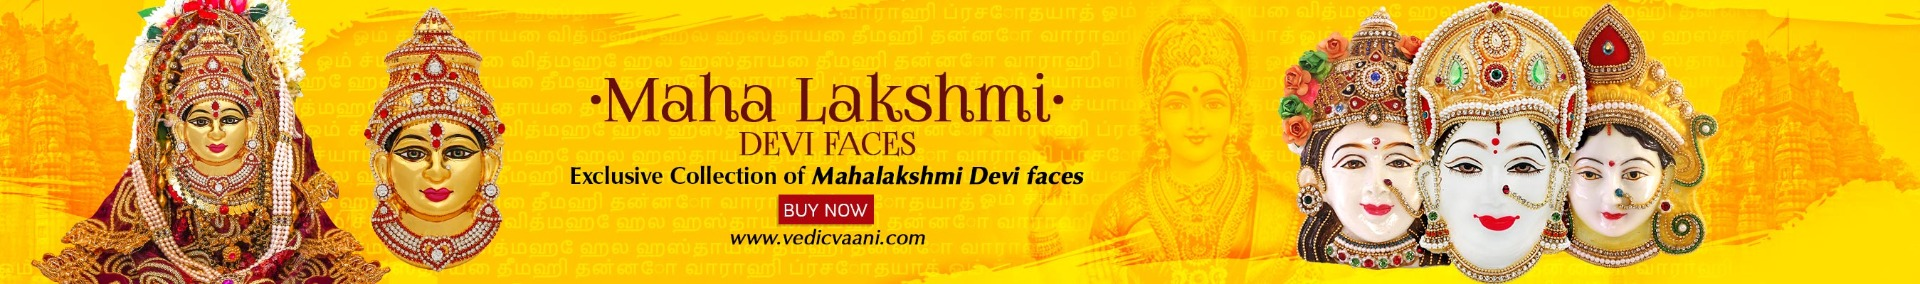 Mahalakshmi Devi Faces